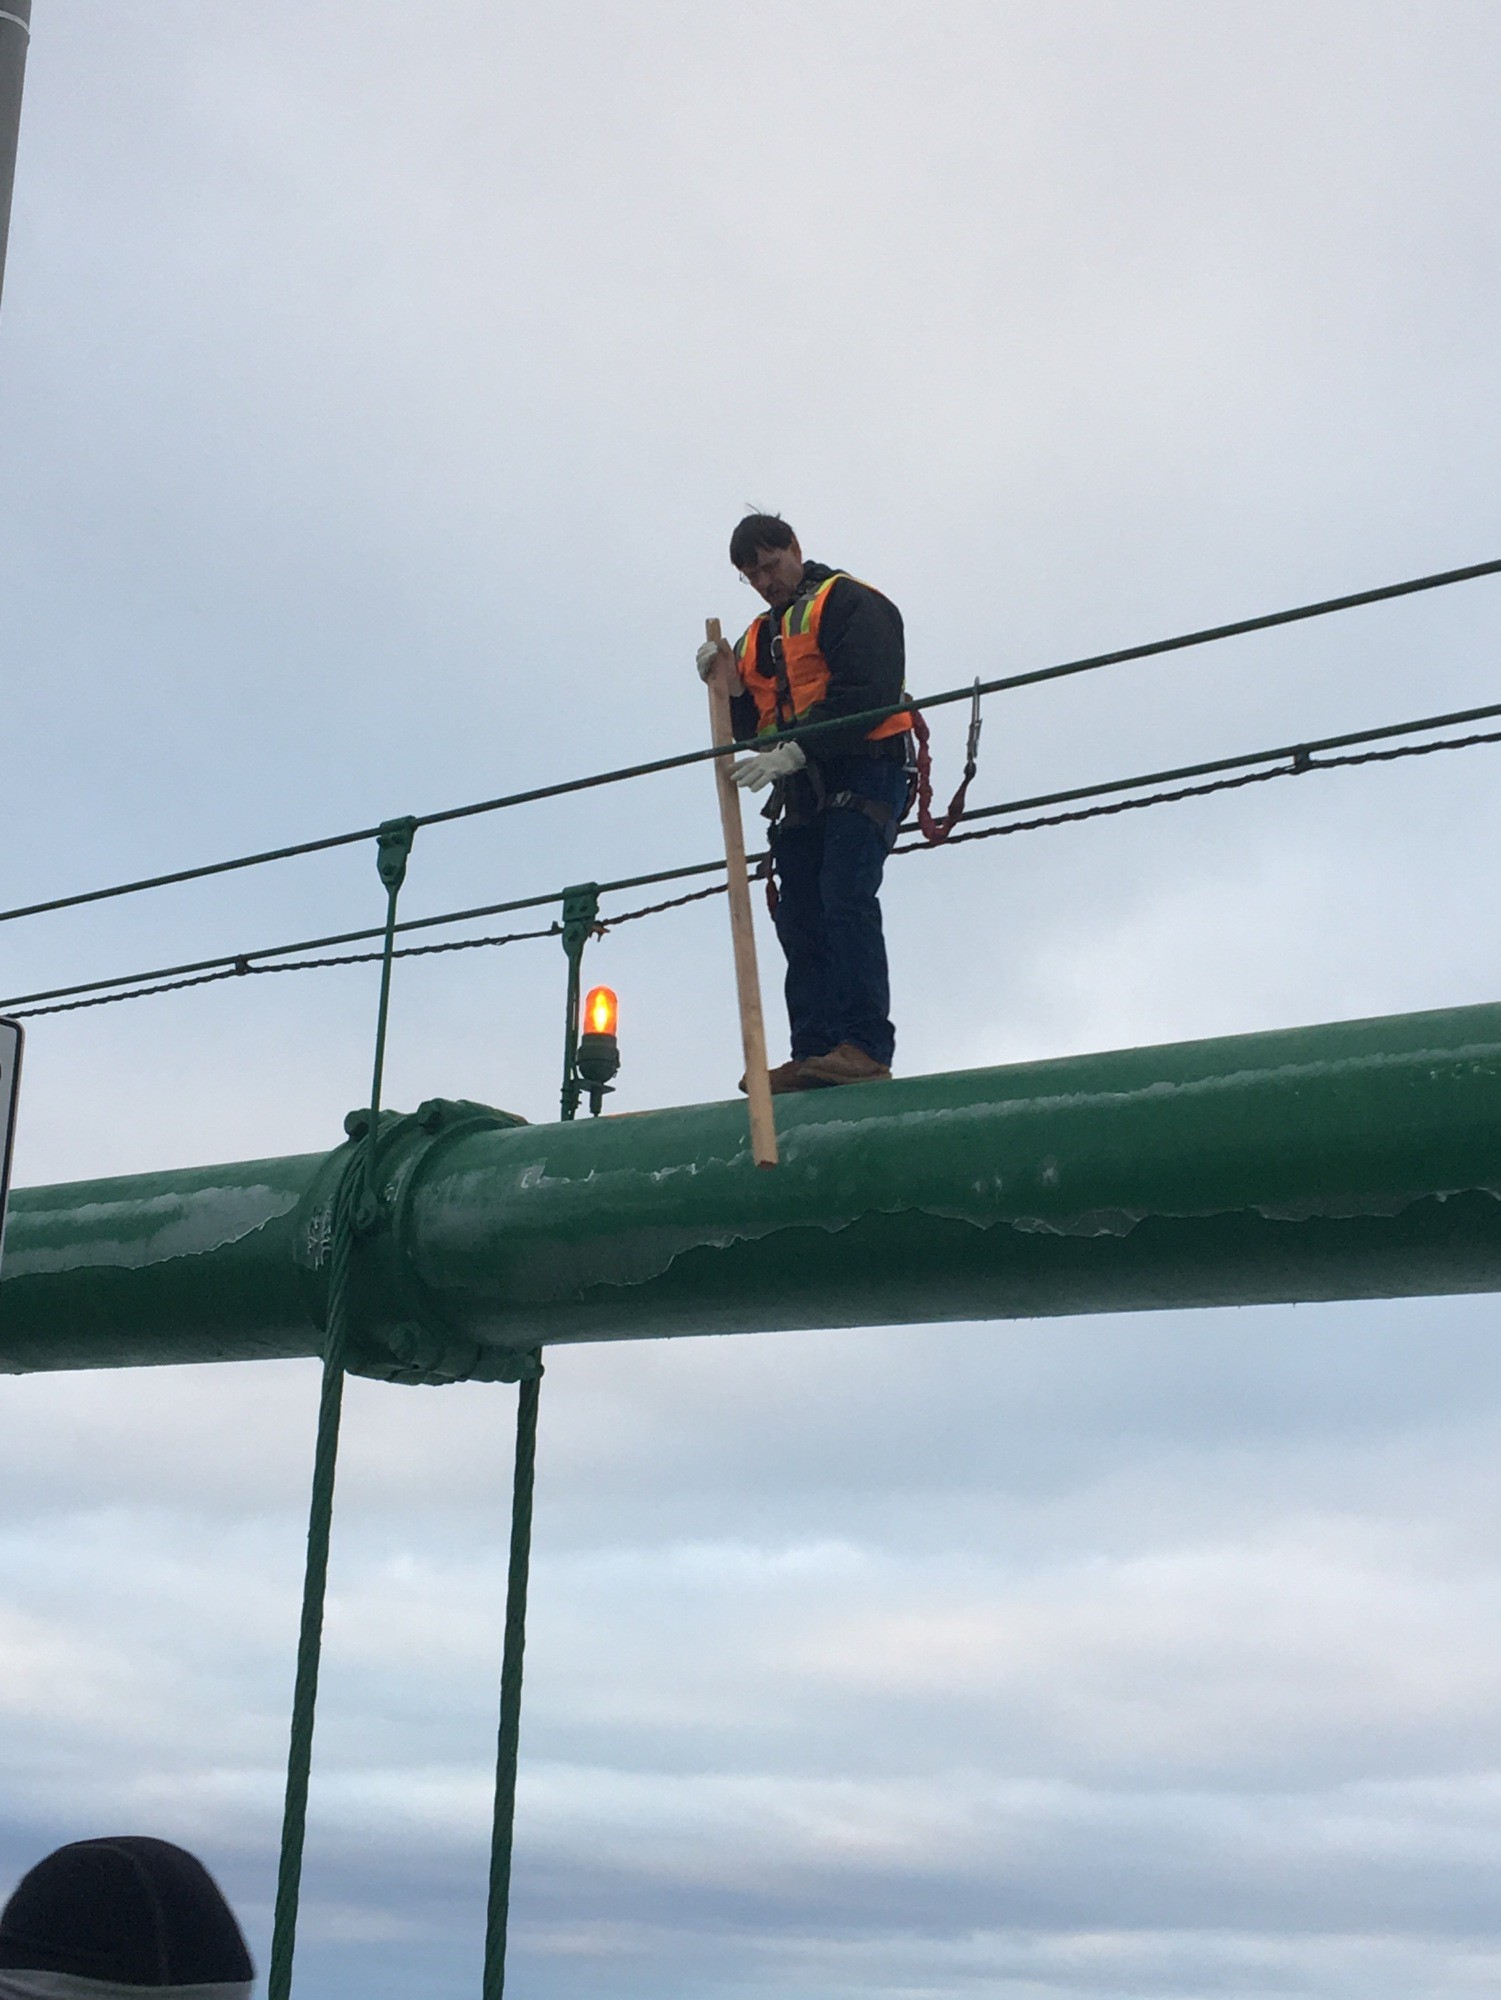 MBA steeplejack knocking ice off Feb. 25, 2018